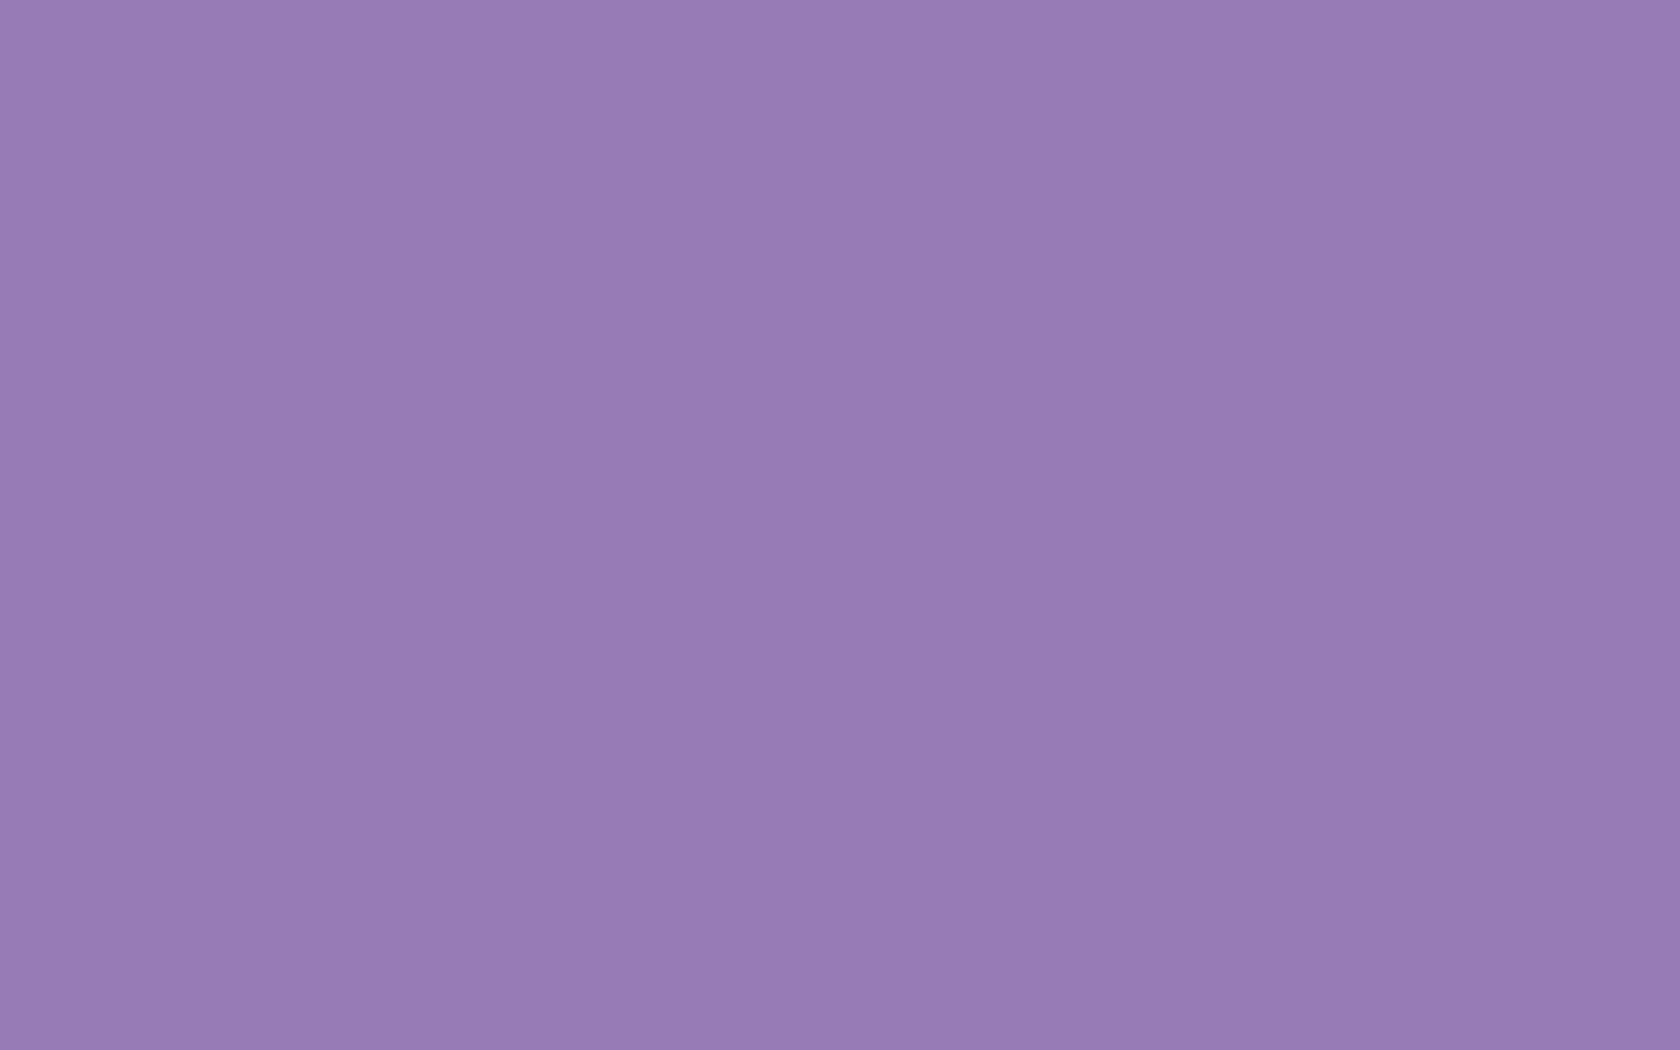 1680x1050 Lavender Purple Solid Color Background